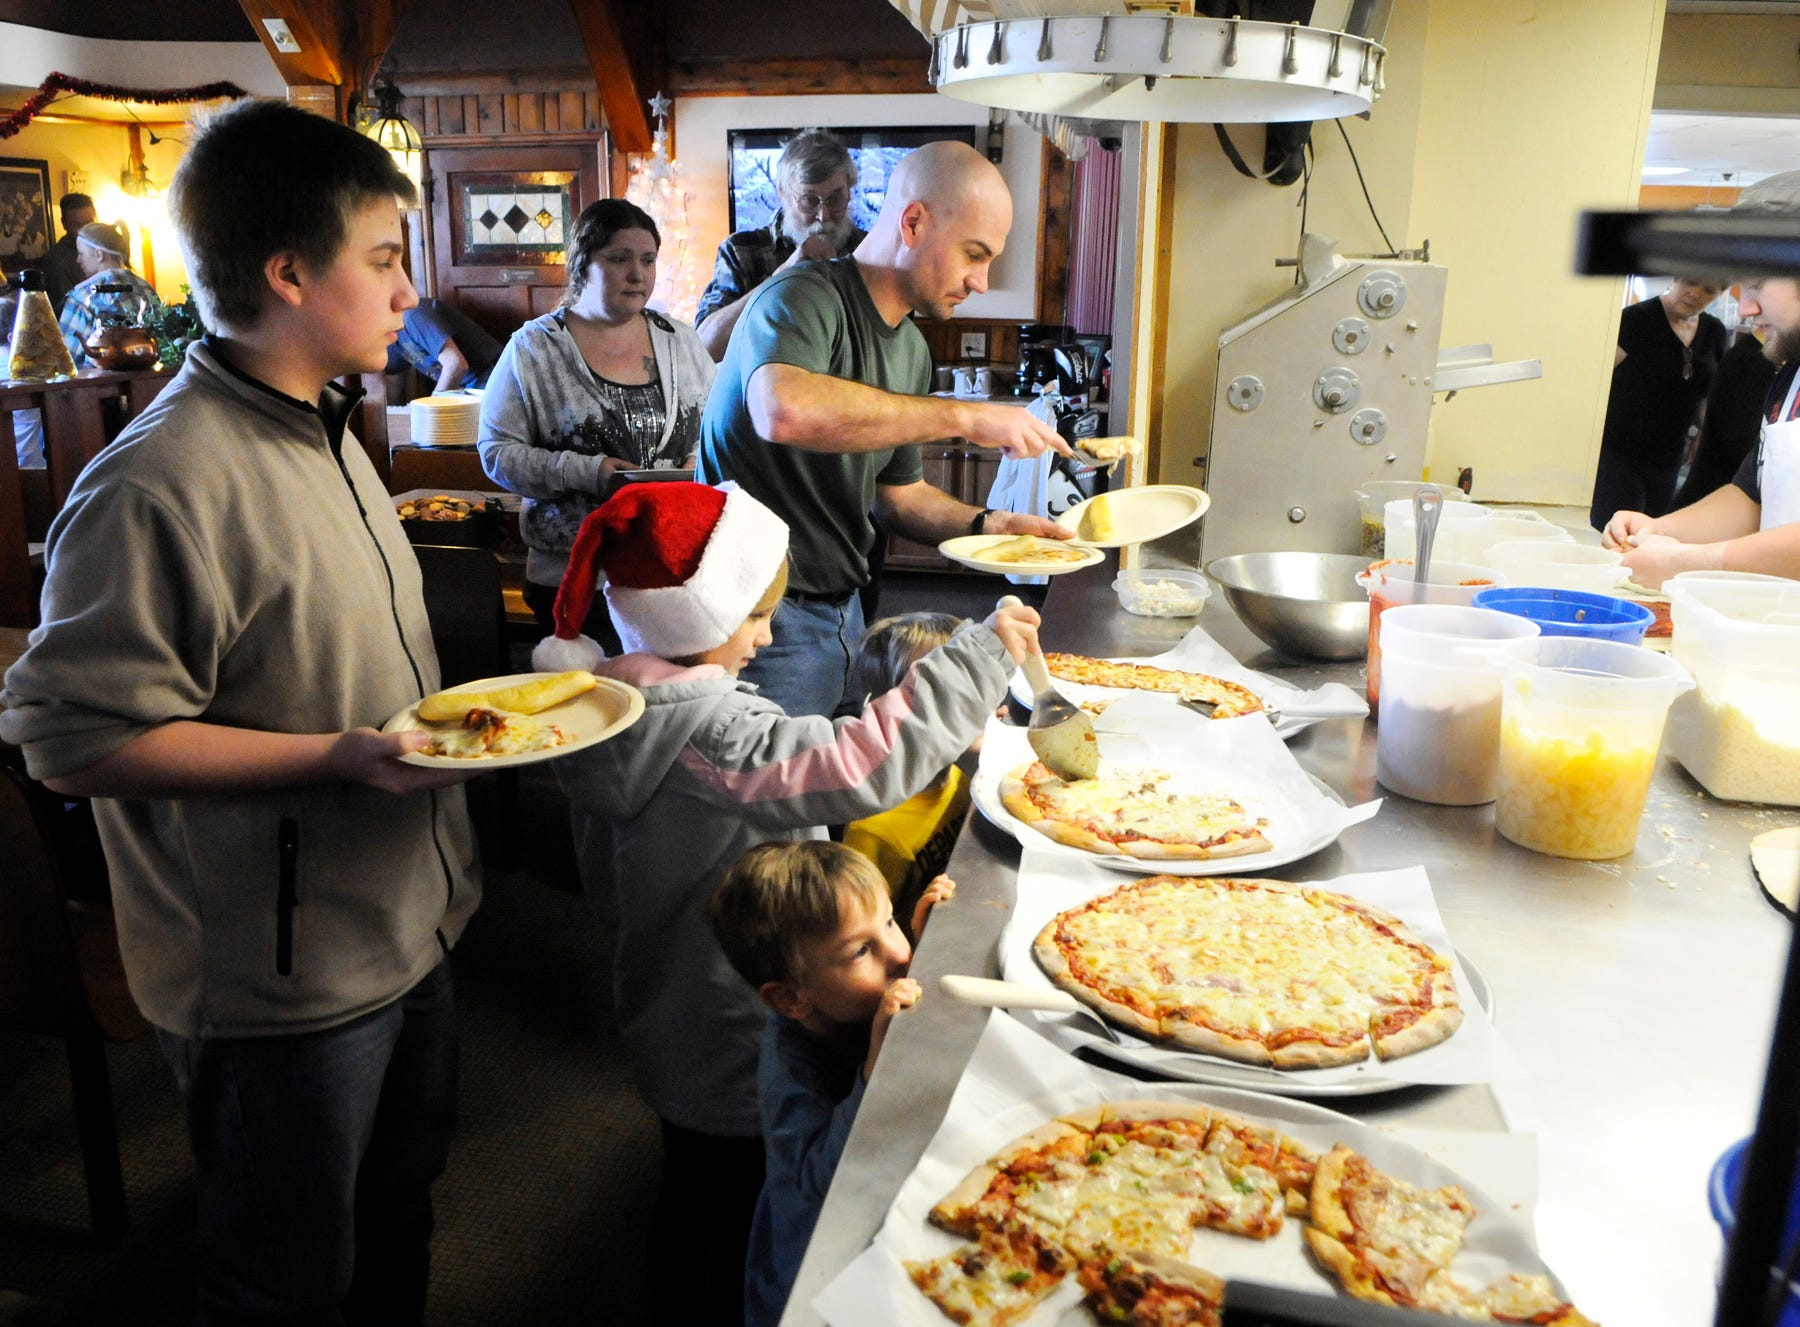 People get pizza and soup at Charlie's Pizza in Little Falls Tuesday, Dec. 25, 2012. Owner Charlie Peterka opened his restaurant and served free pizza to anyone who did not have holiday plans